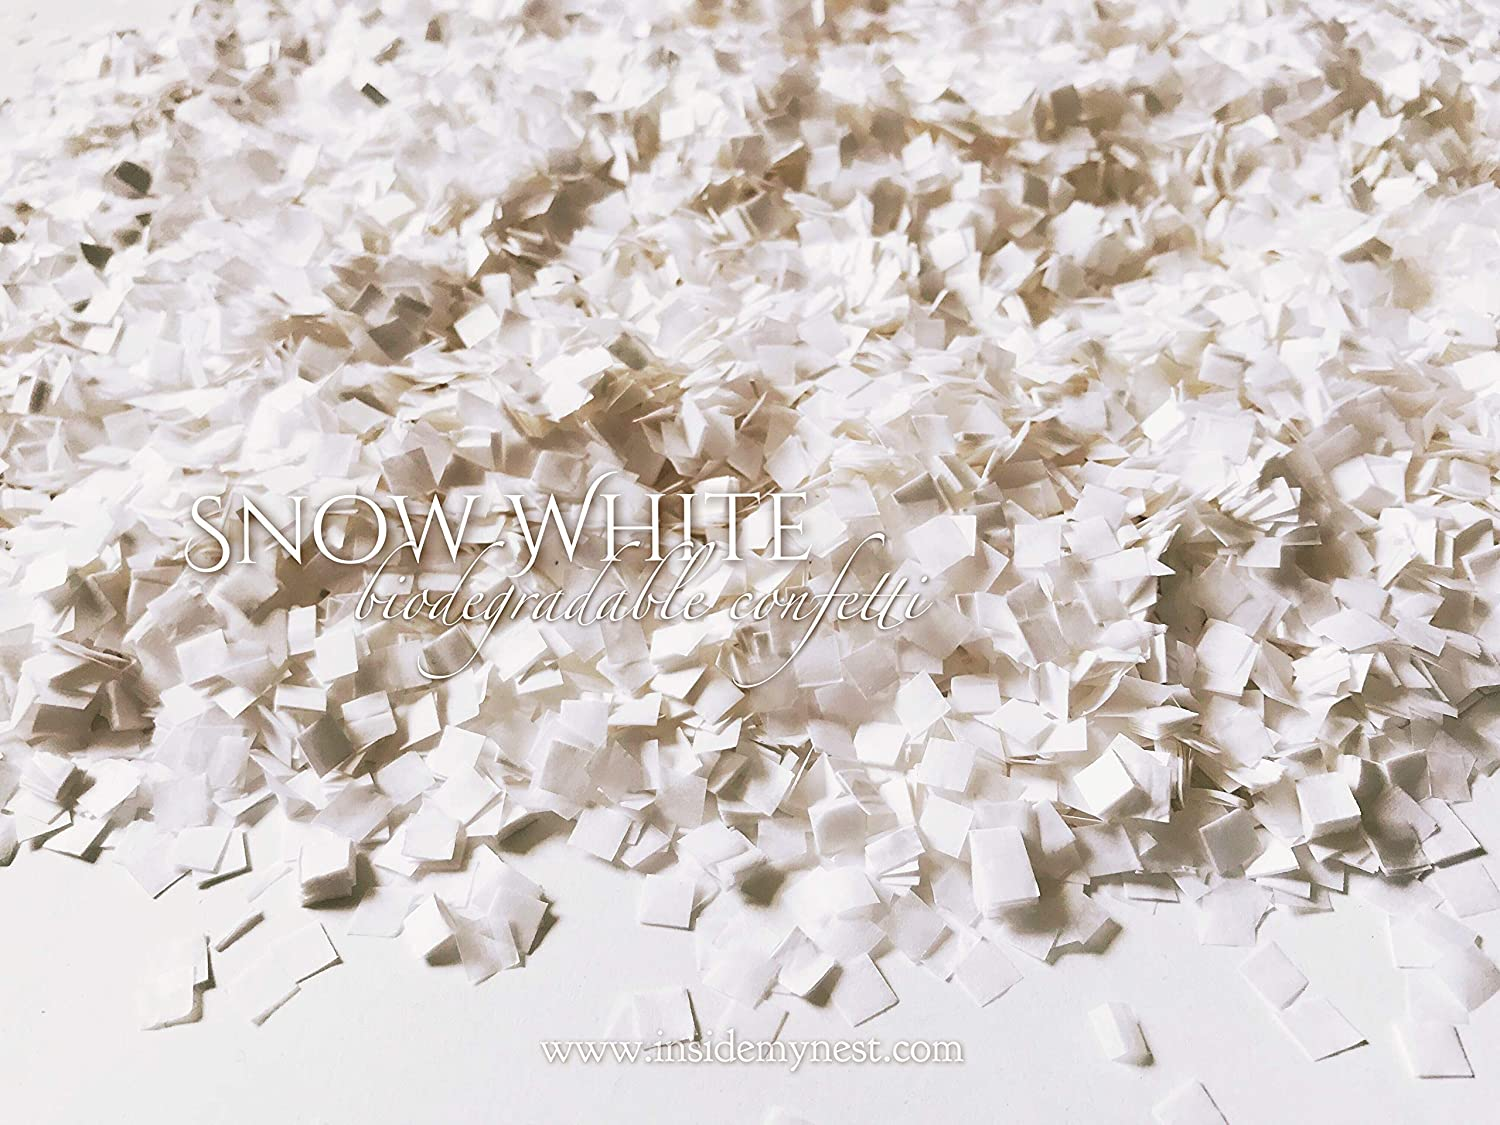 50g Snow White Confetti Party Decorations Winter Wedding Baby Shower Throwing Table Decor